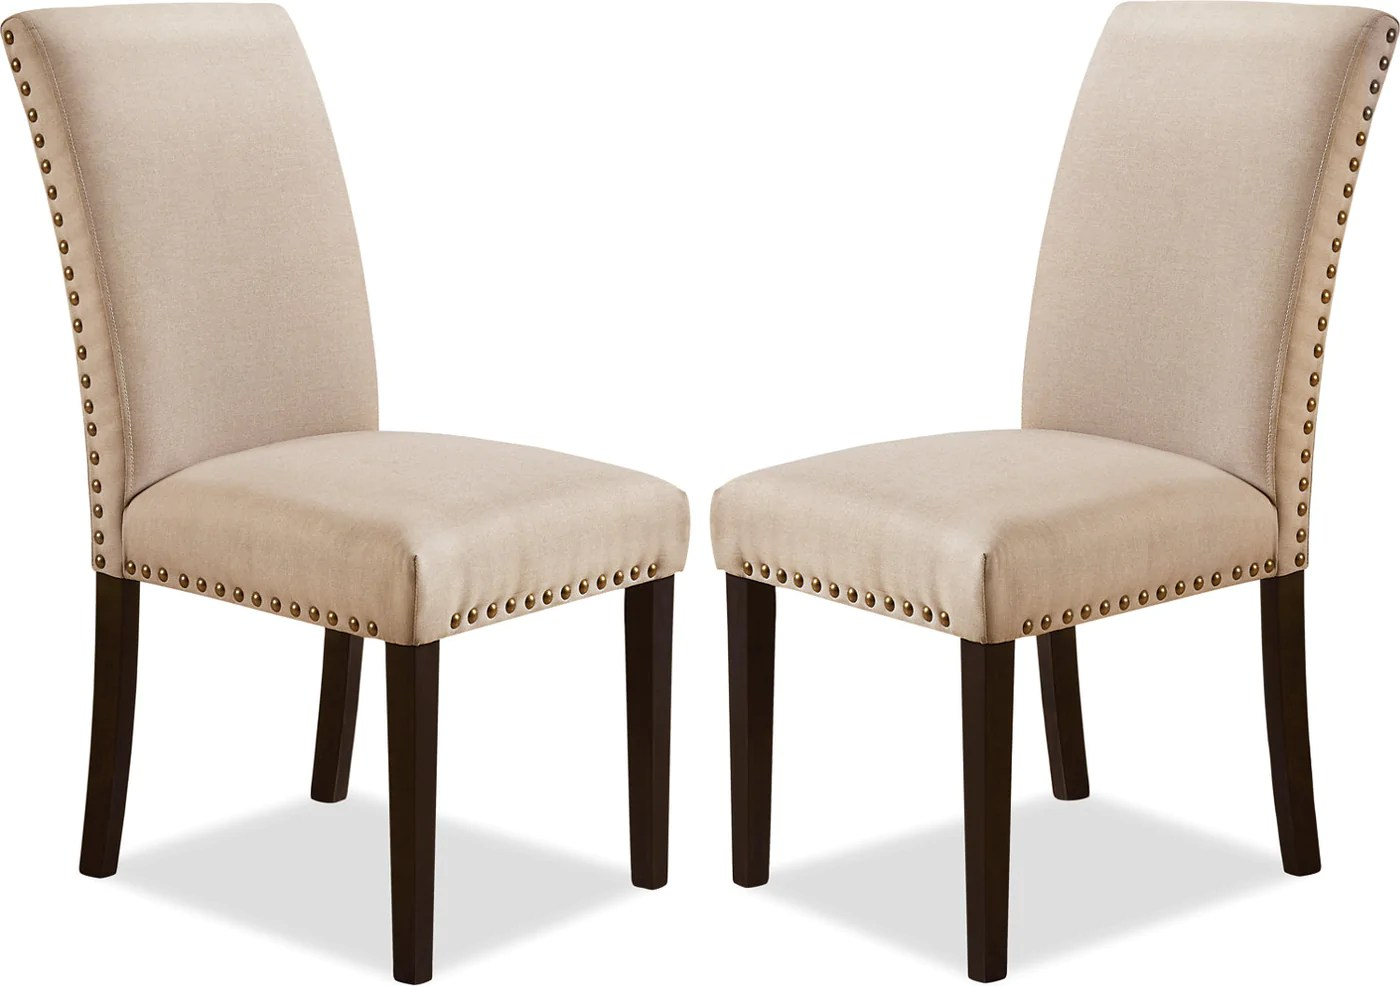 Studded Dining Chairs York Studded Dining Chair Set Of 2 Taupe